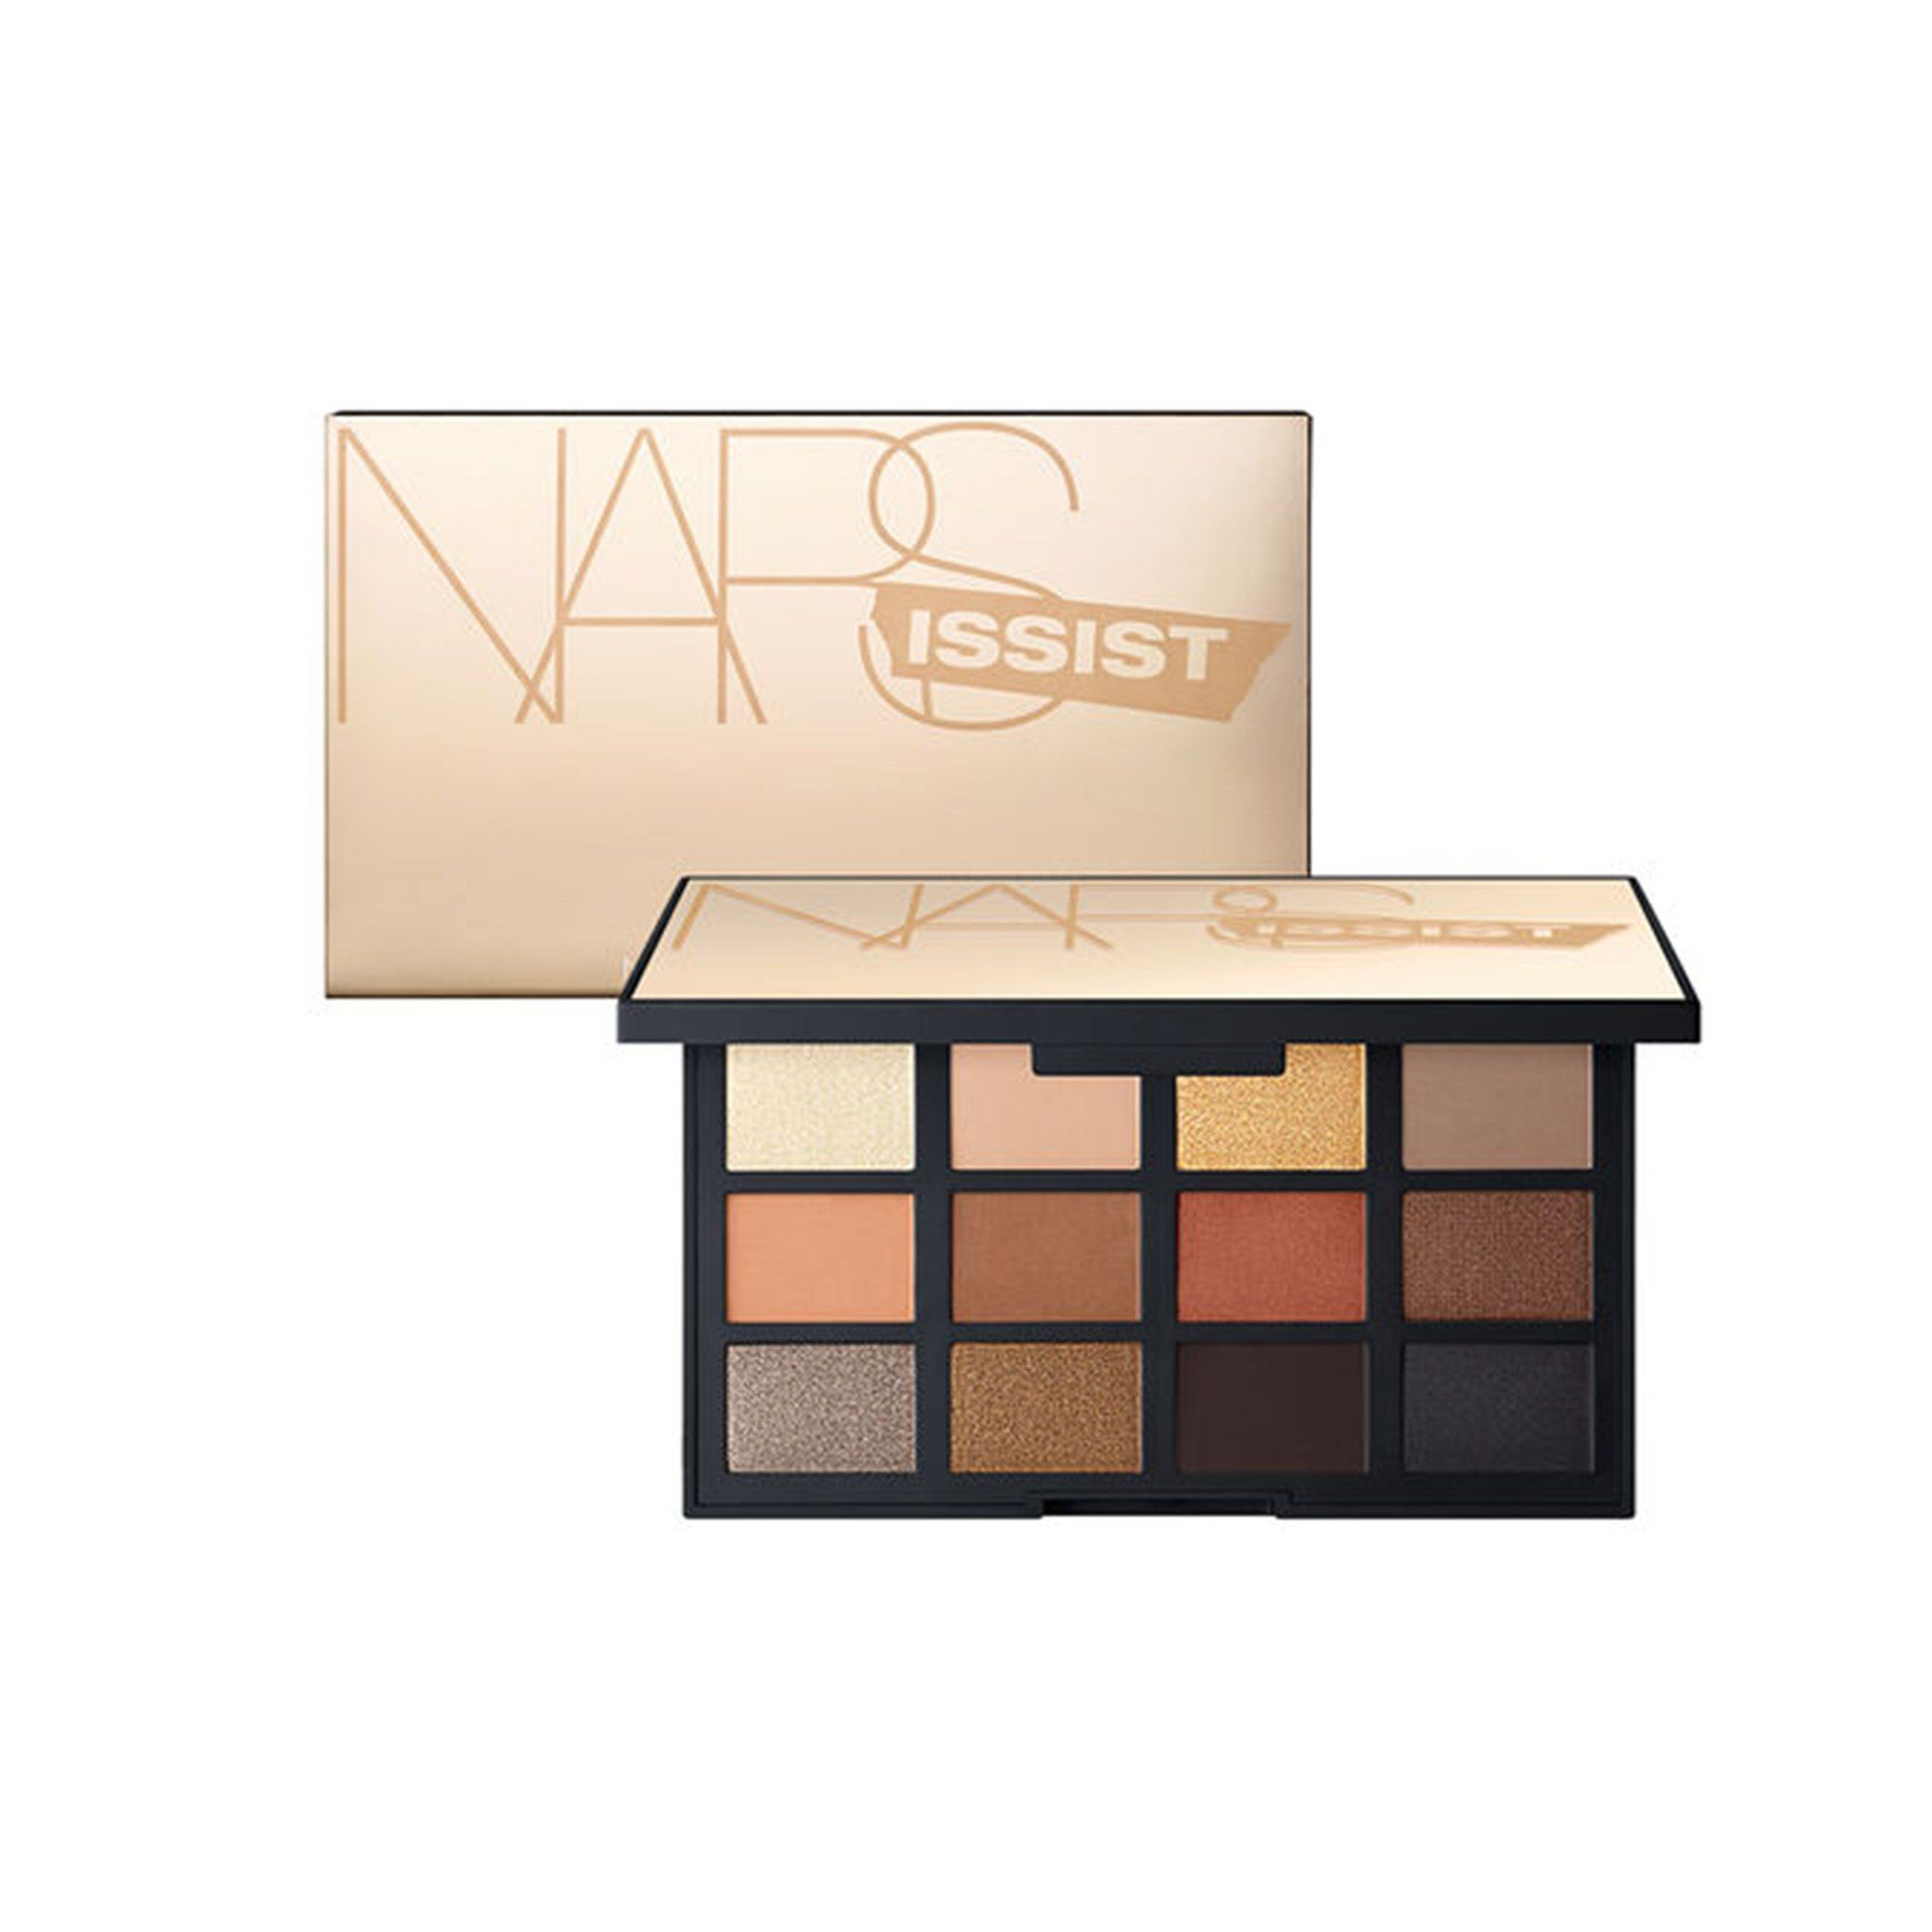 17 New Makeup Palettes You Need To Try This Spring Nars